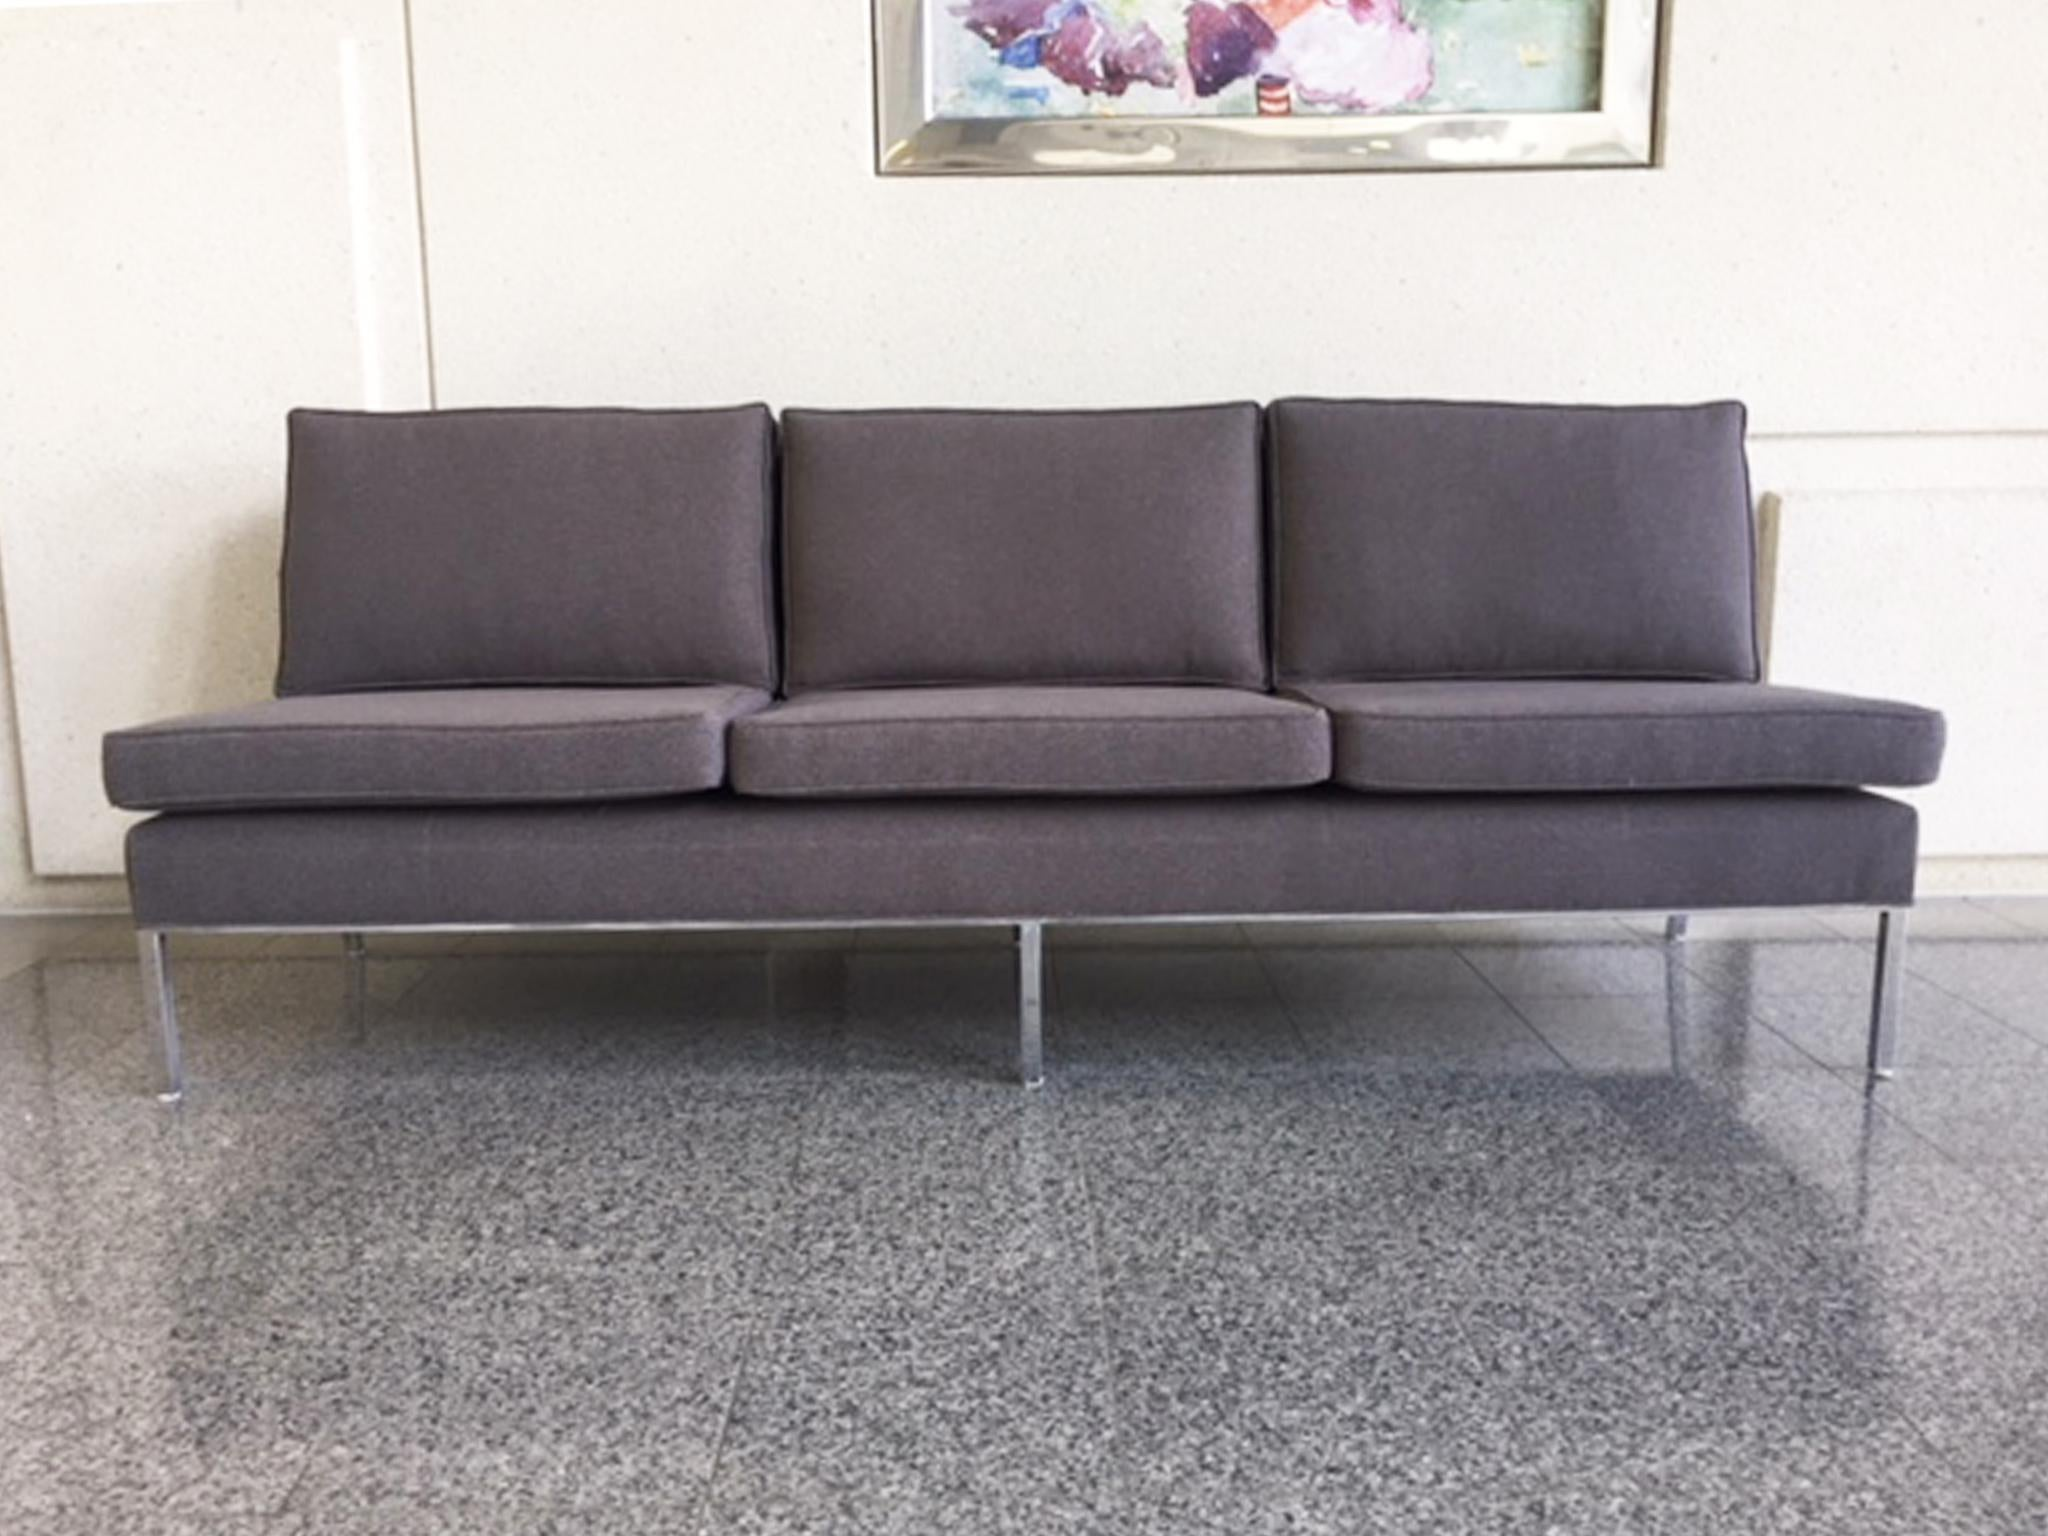 Florence Knoll Mid Century Florence Knoll Armless Sofas   A Pair For Sale    Image